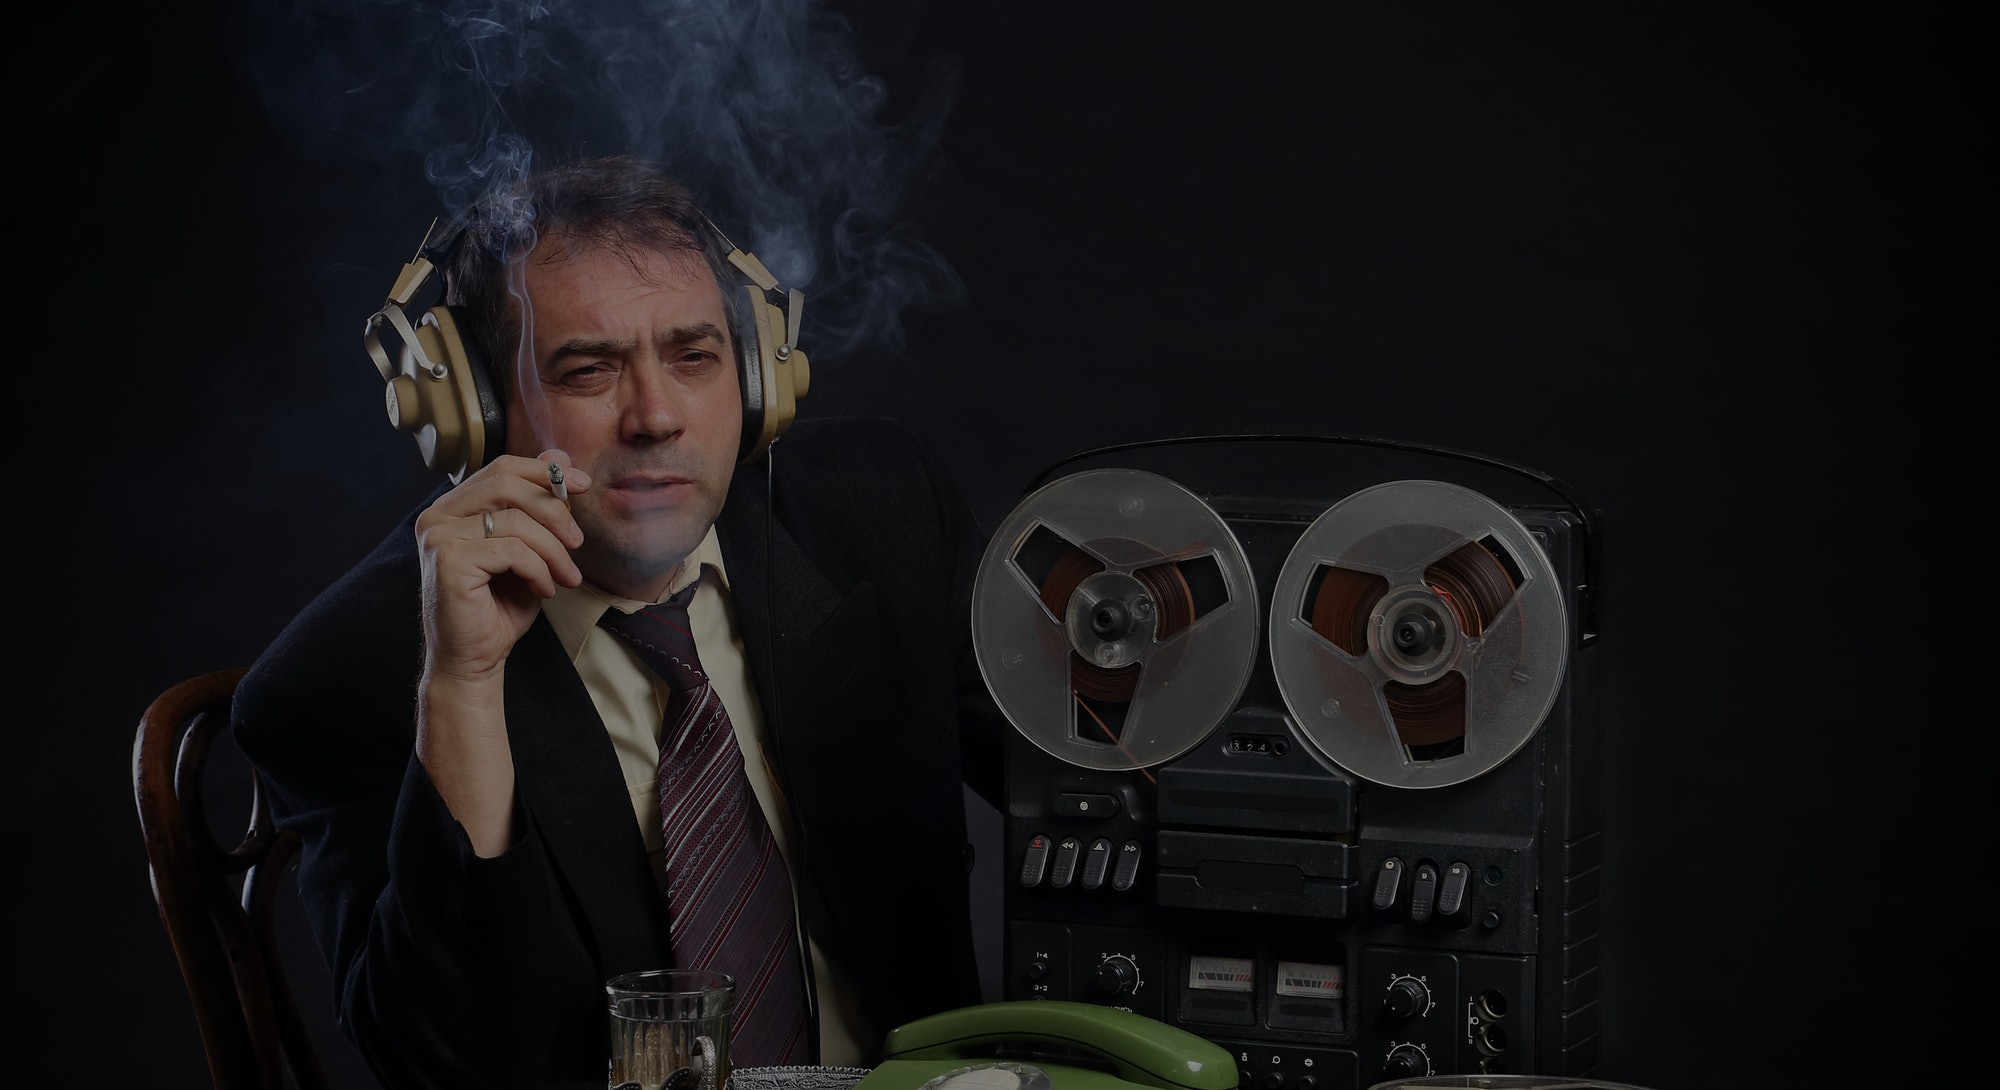 Man in headphones listen to music on record player